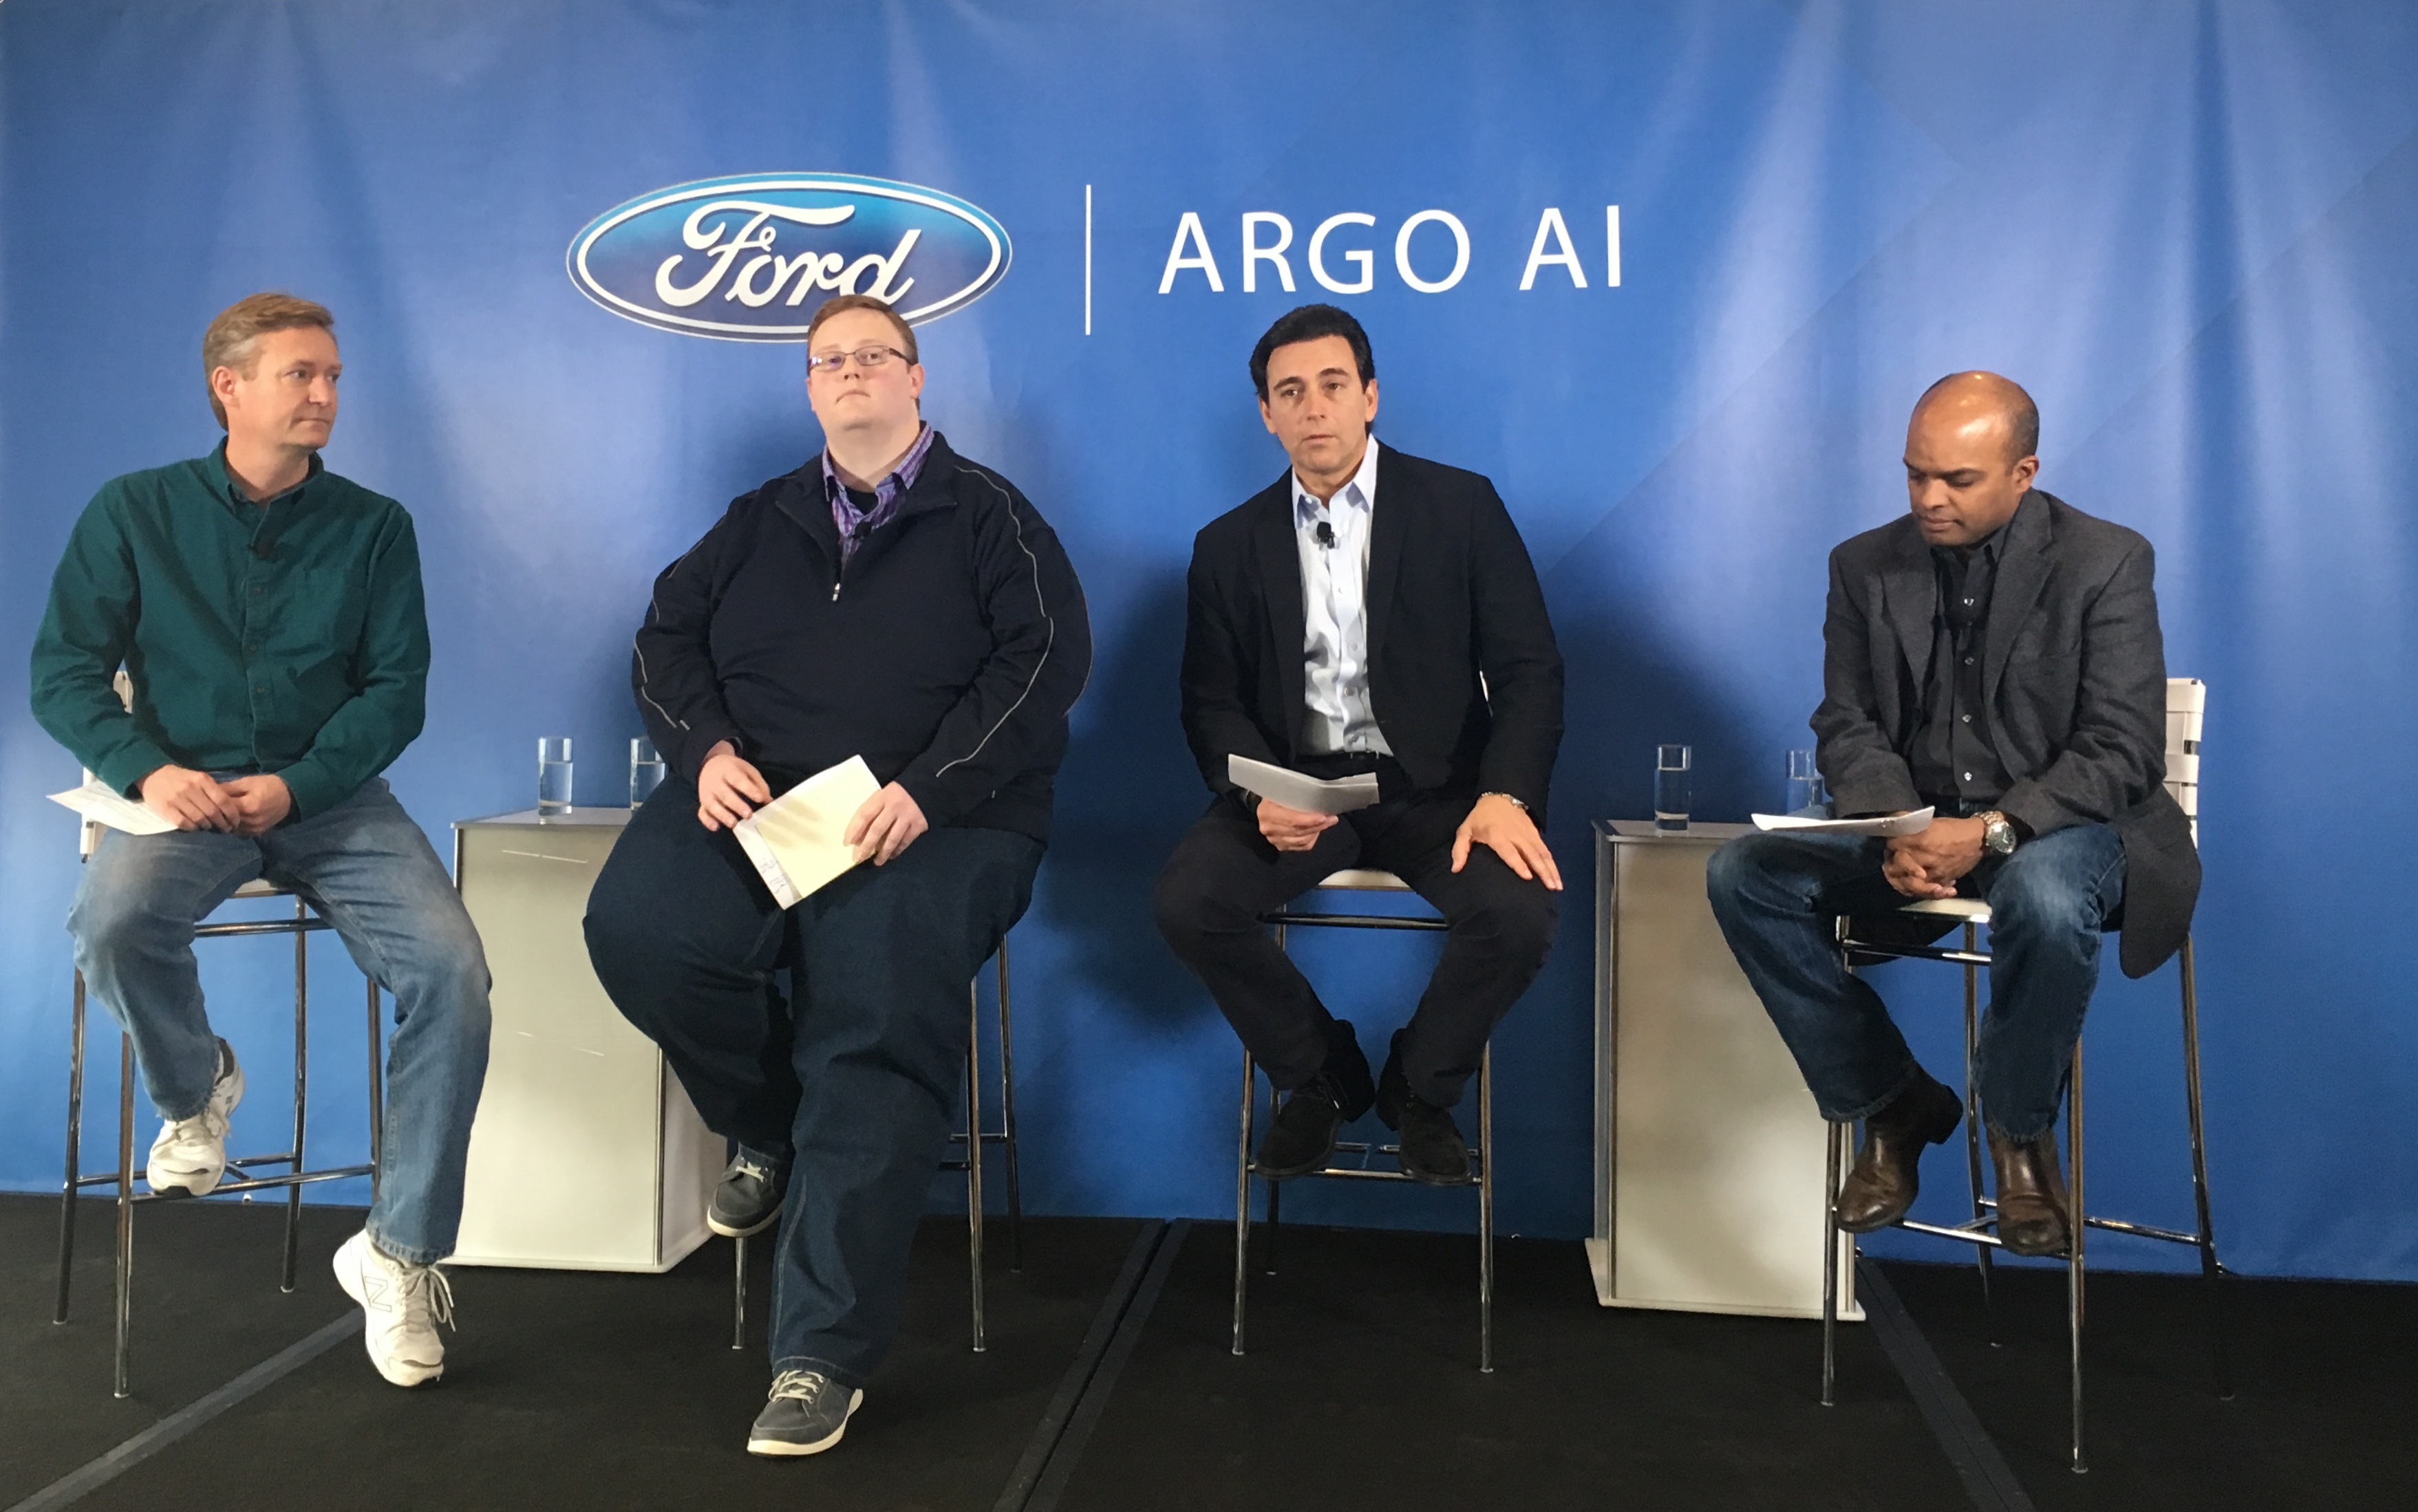 Ford and Argo AI announce investment